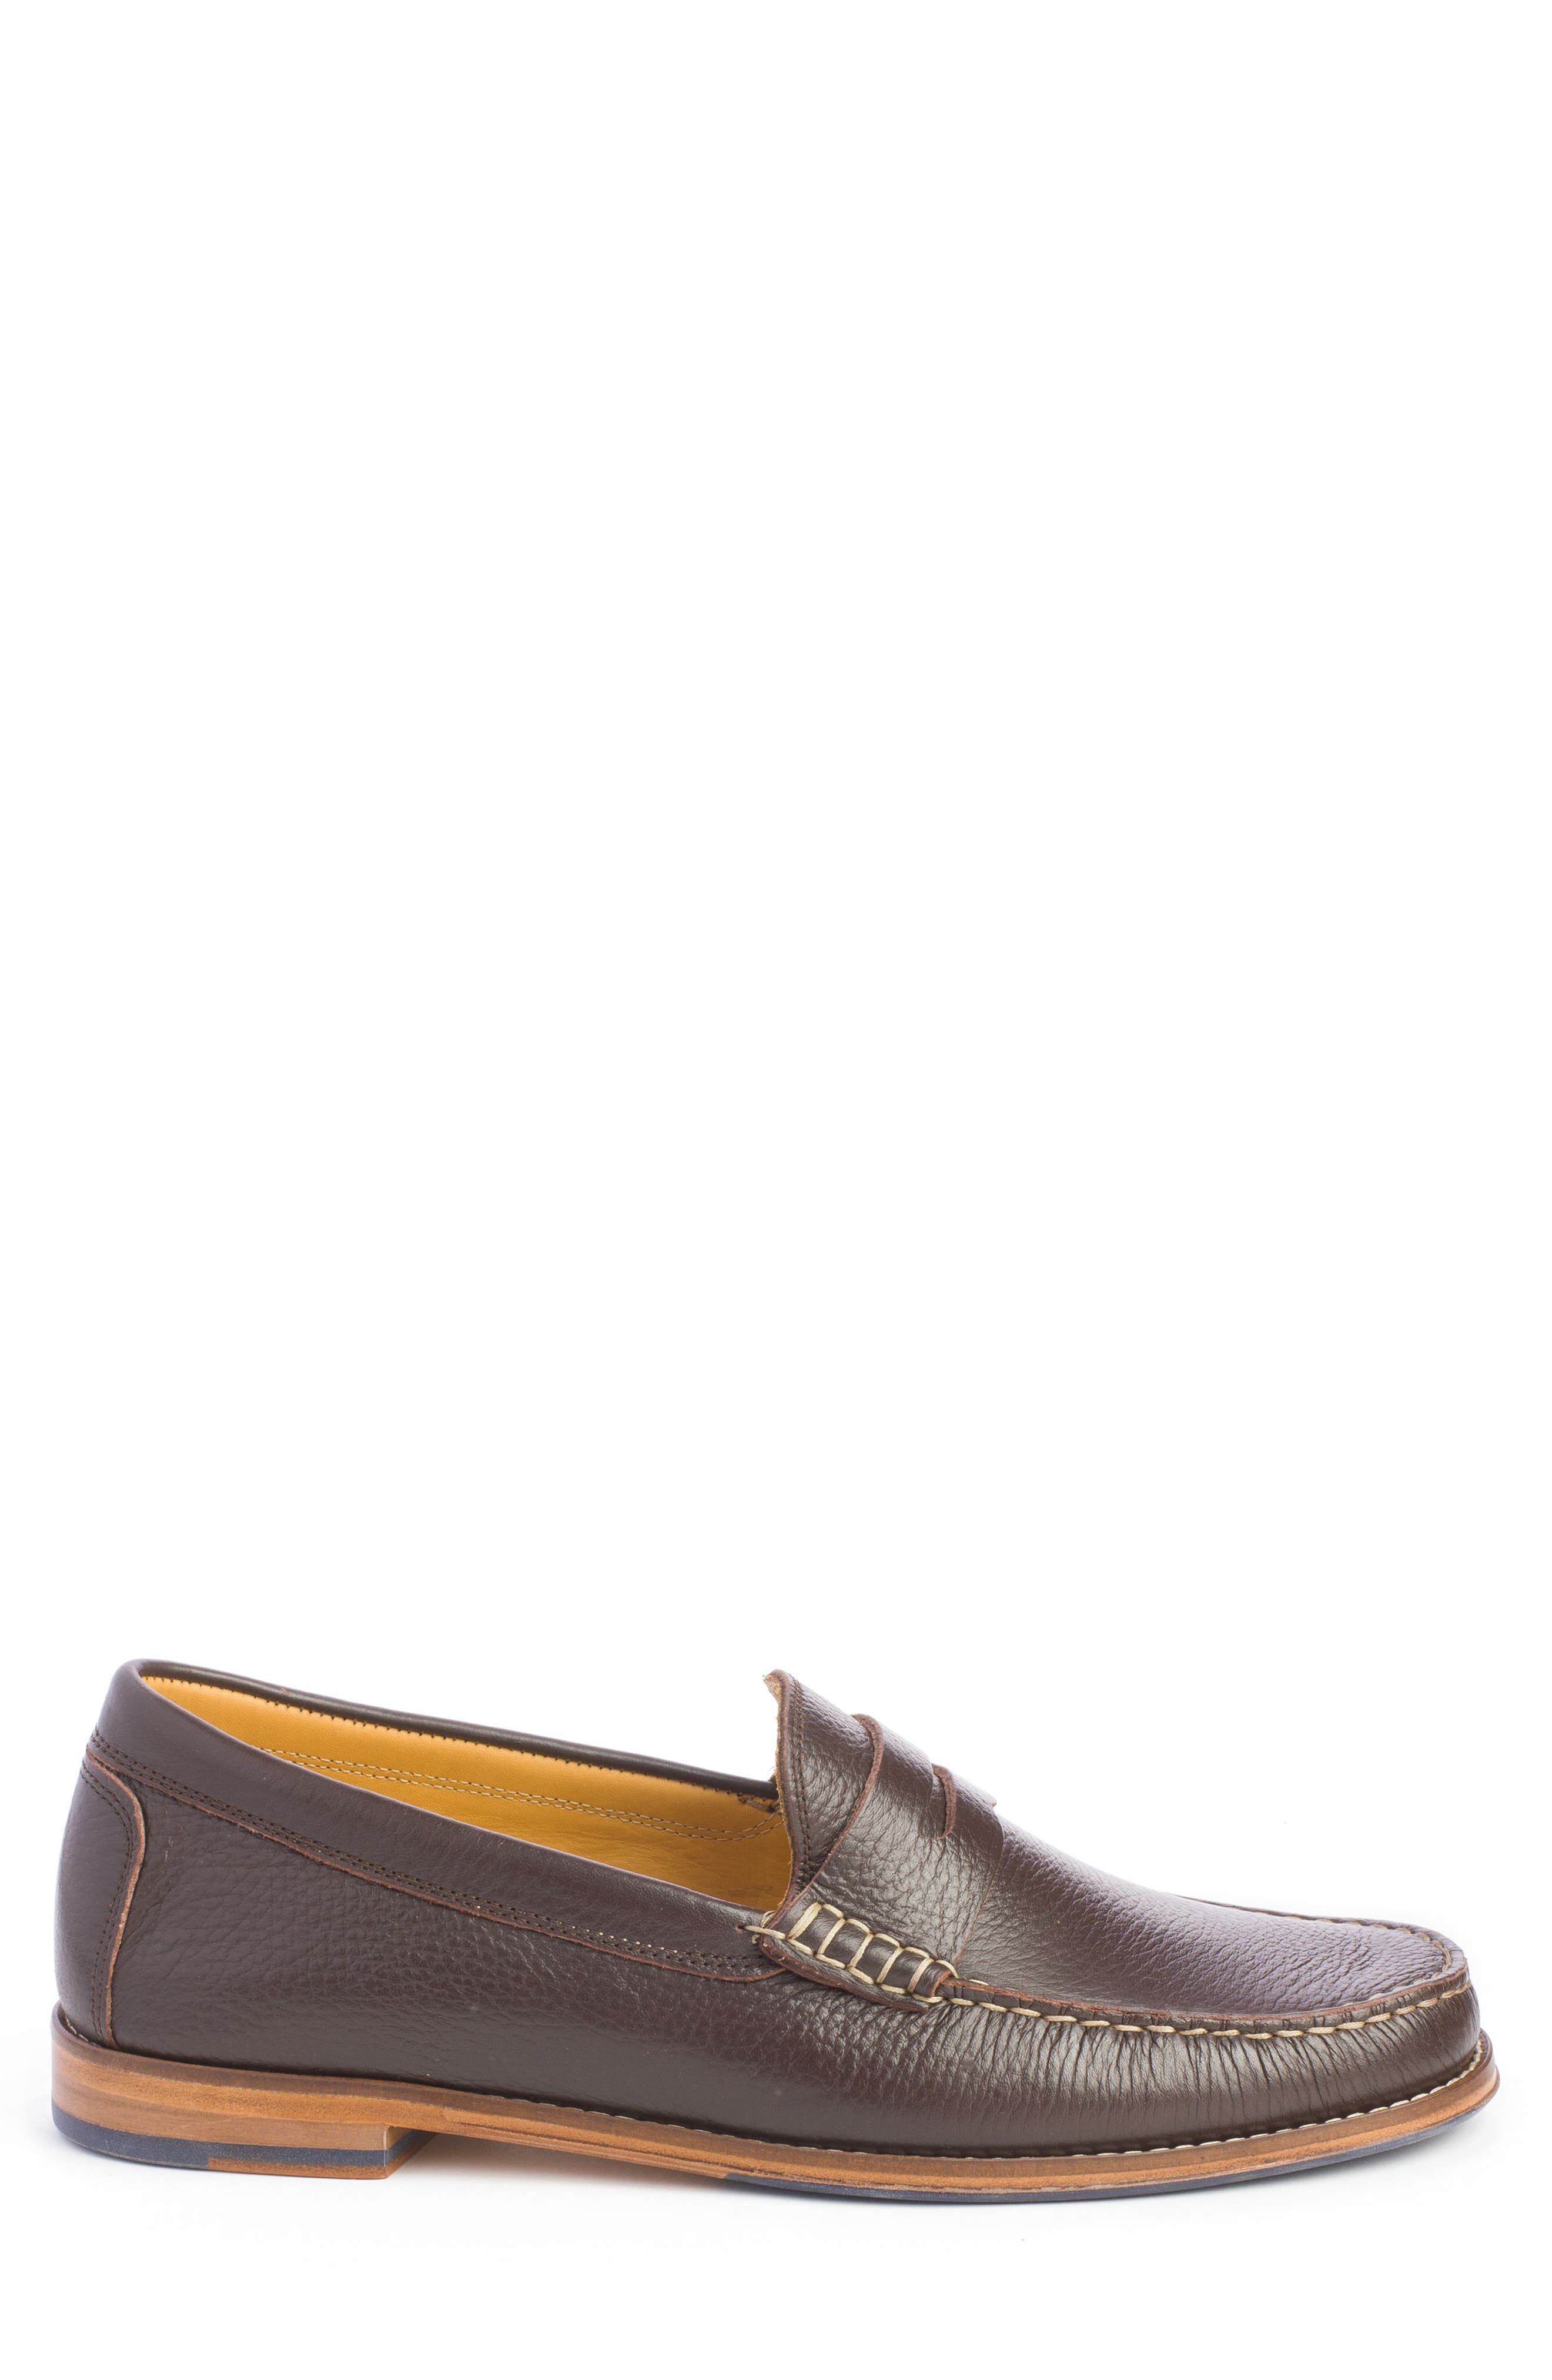 Ripleys Penny Loafer,                             Alternate thumbnail 3, color,                             BROWN